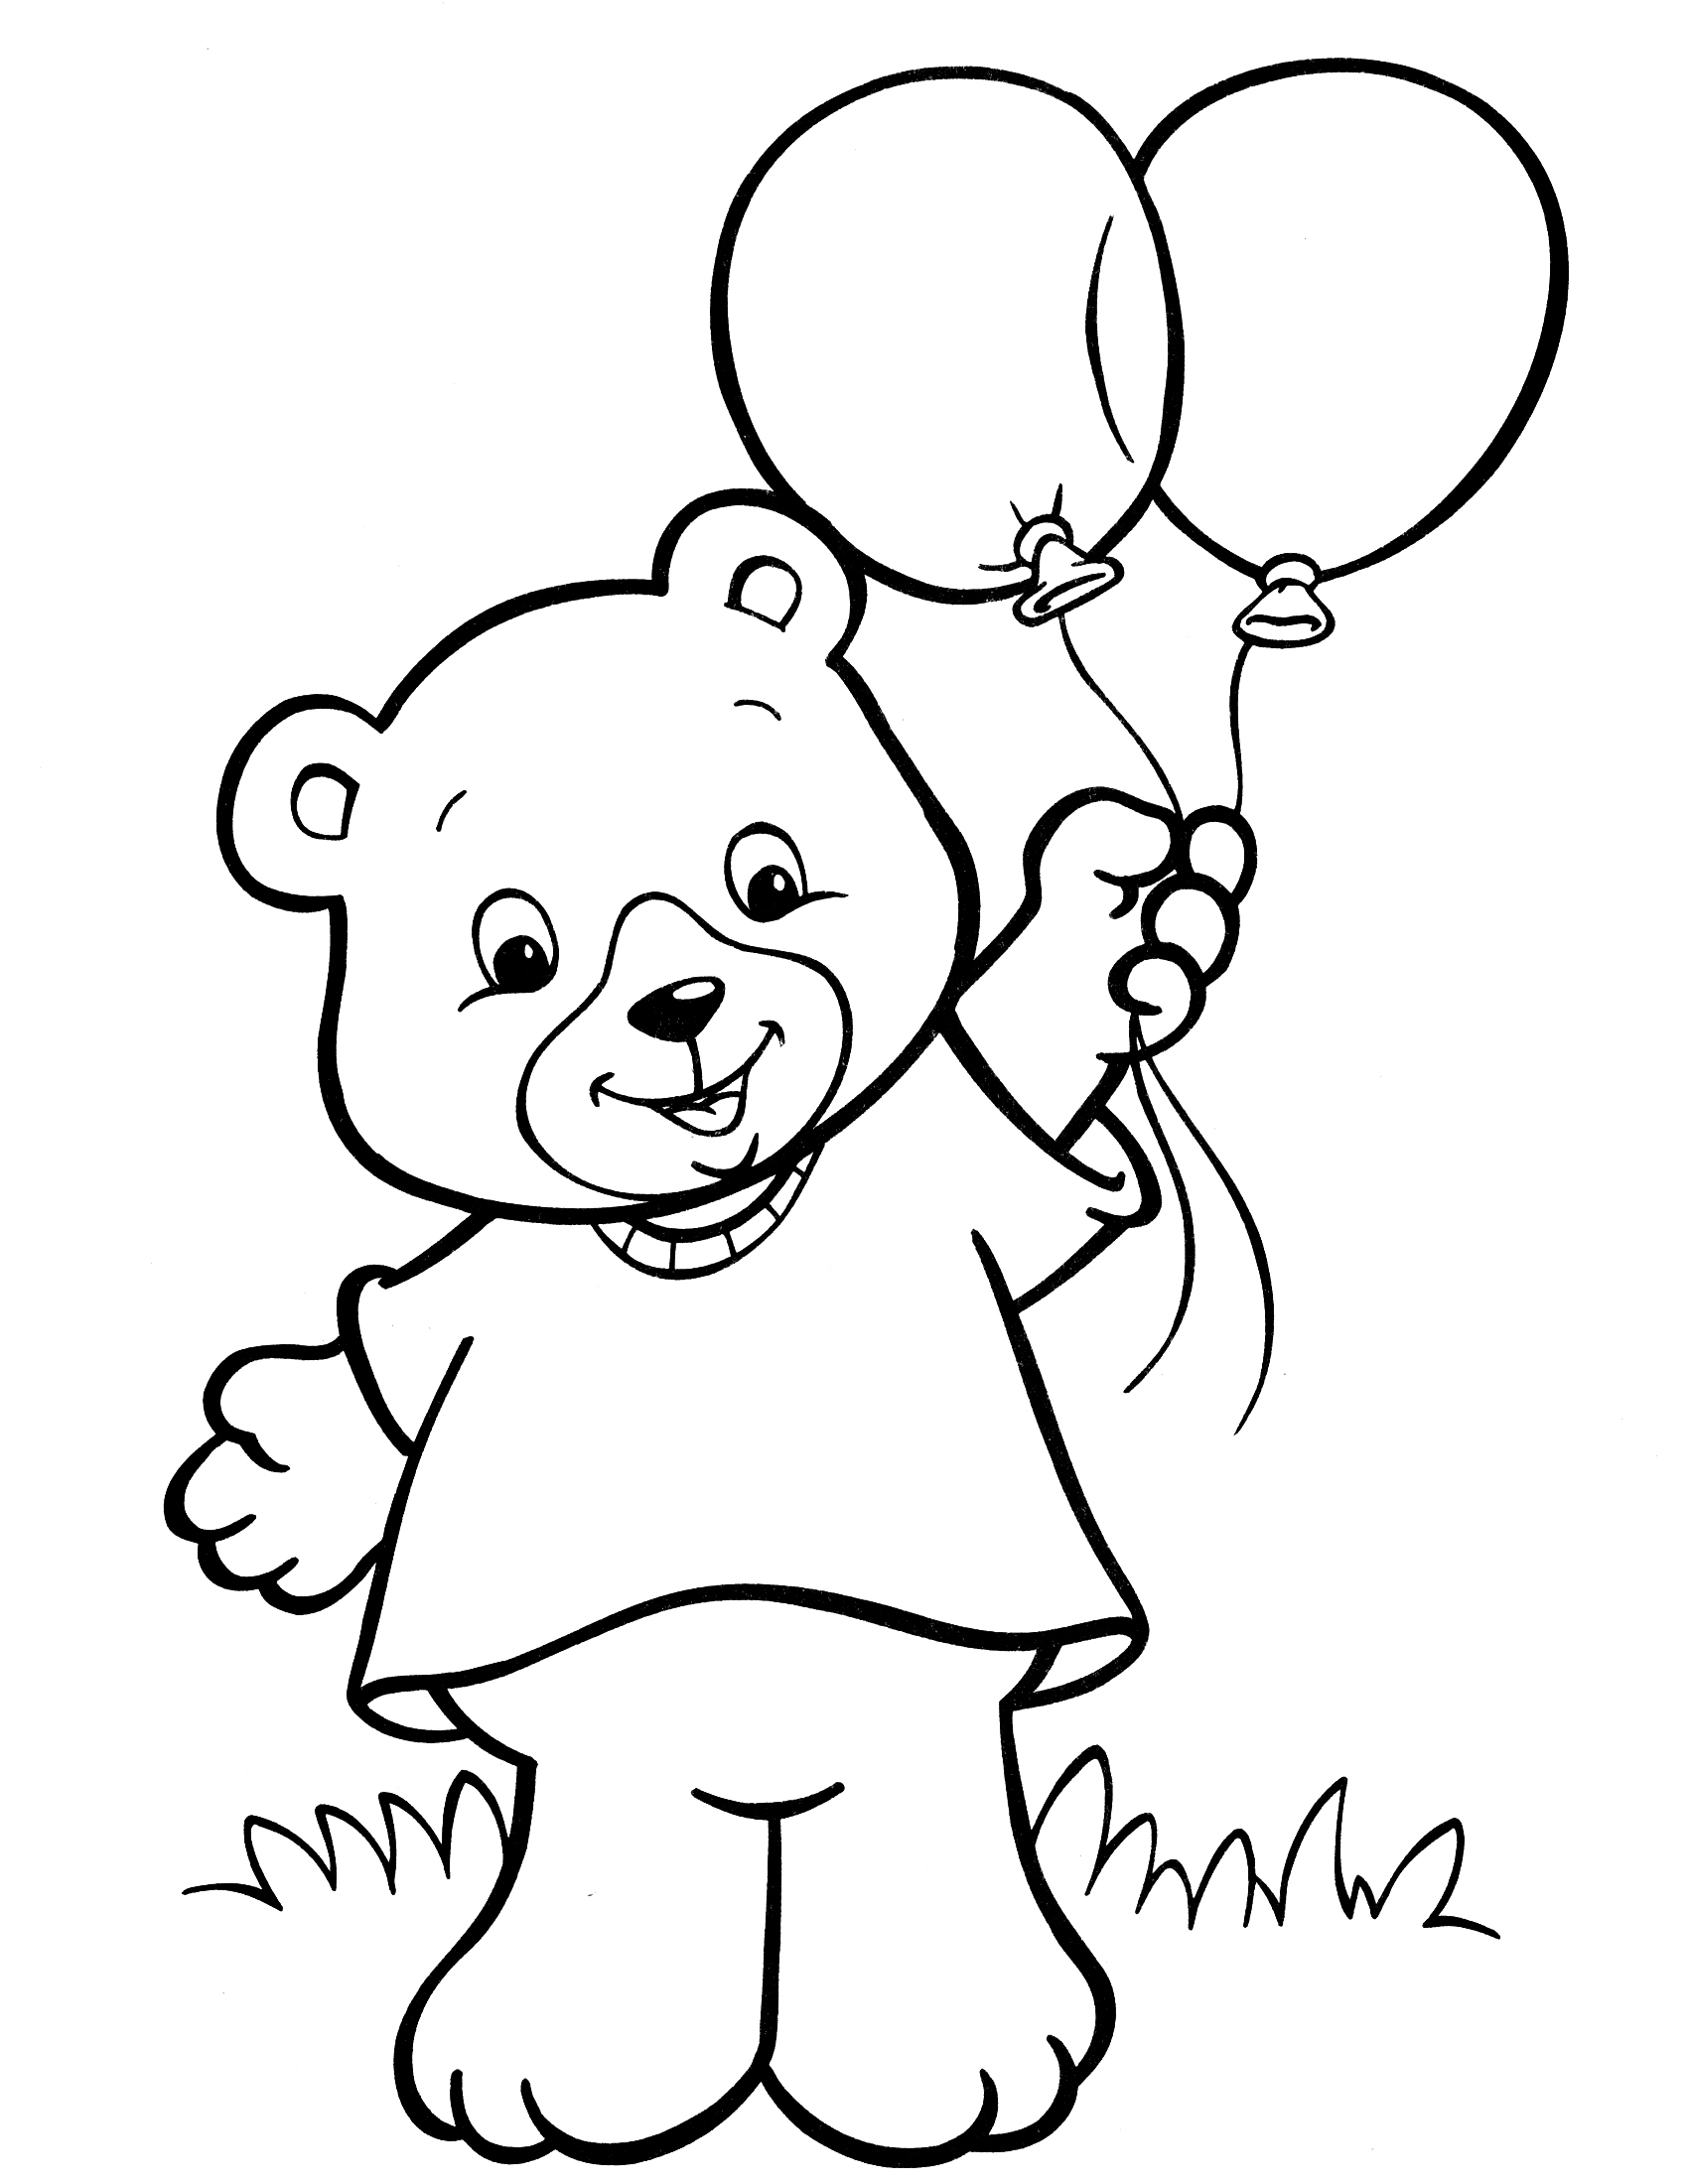 Coloring Pages For 10 Year Olds Printable At Getcolorings